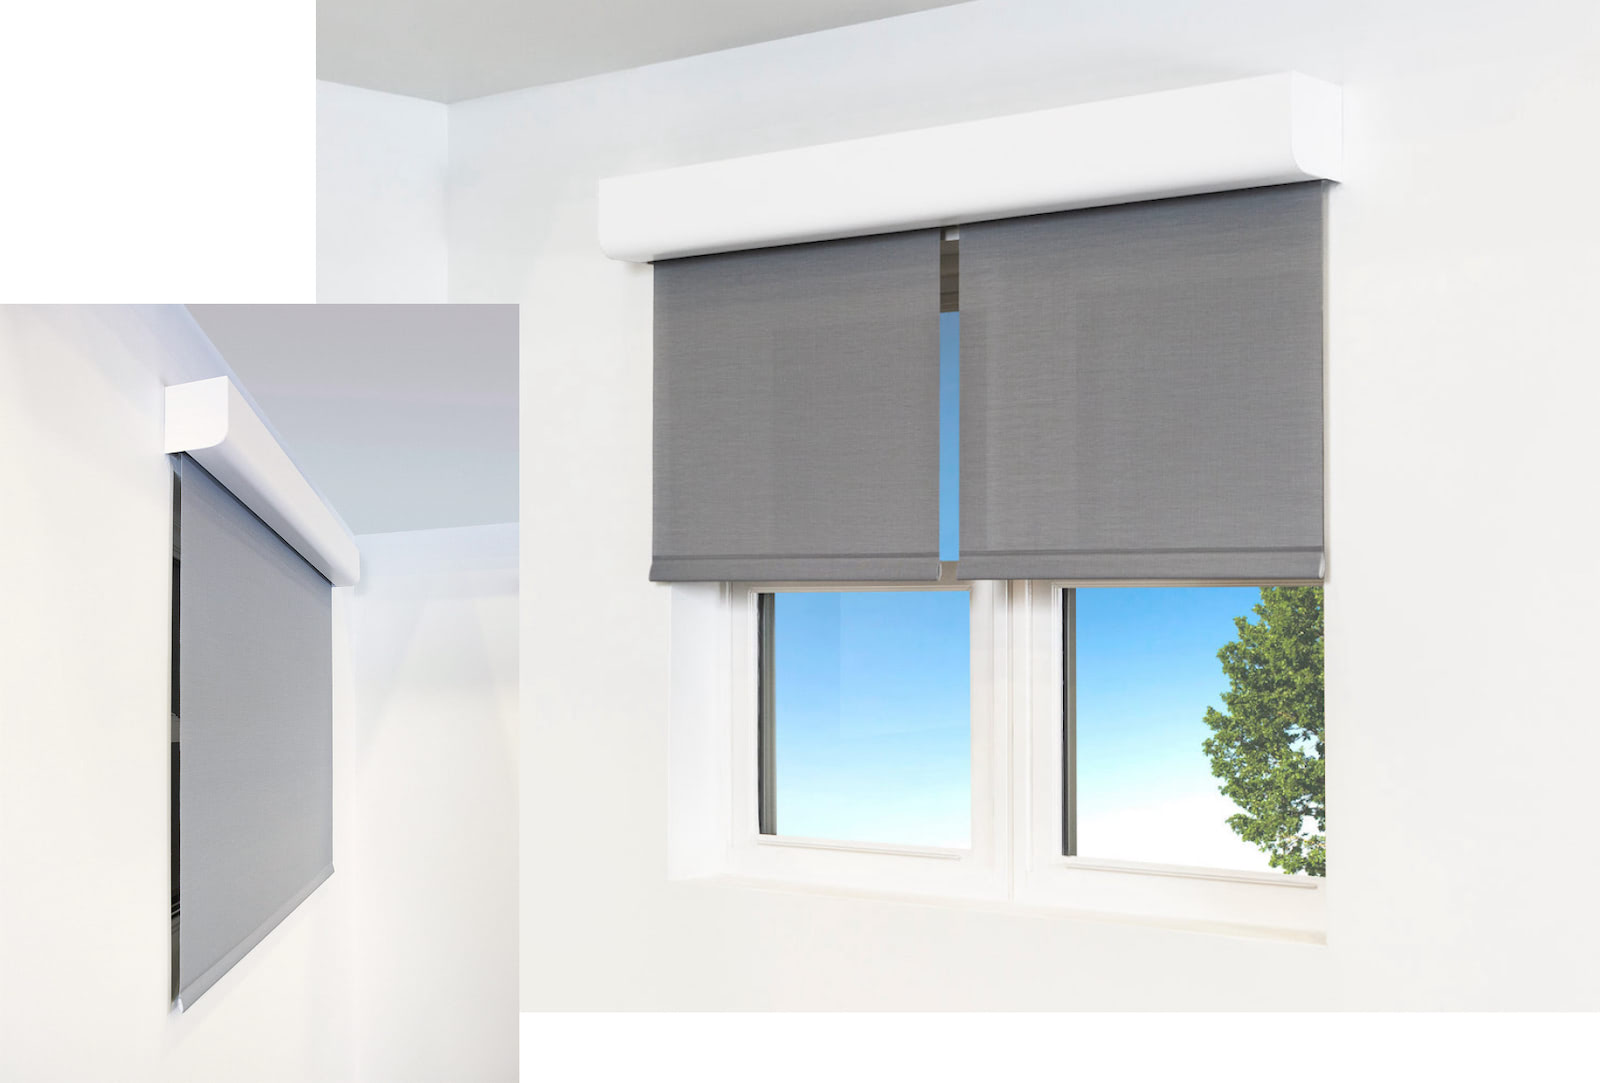 Pictures of 2 windows using Architectural shade hardware